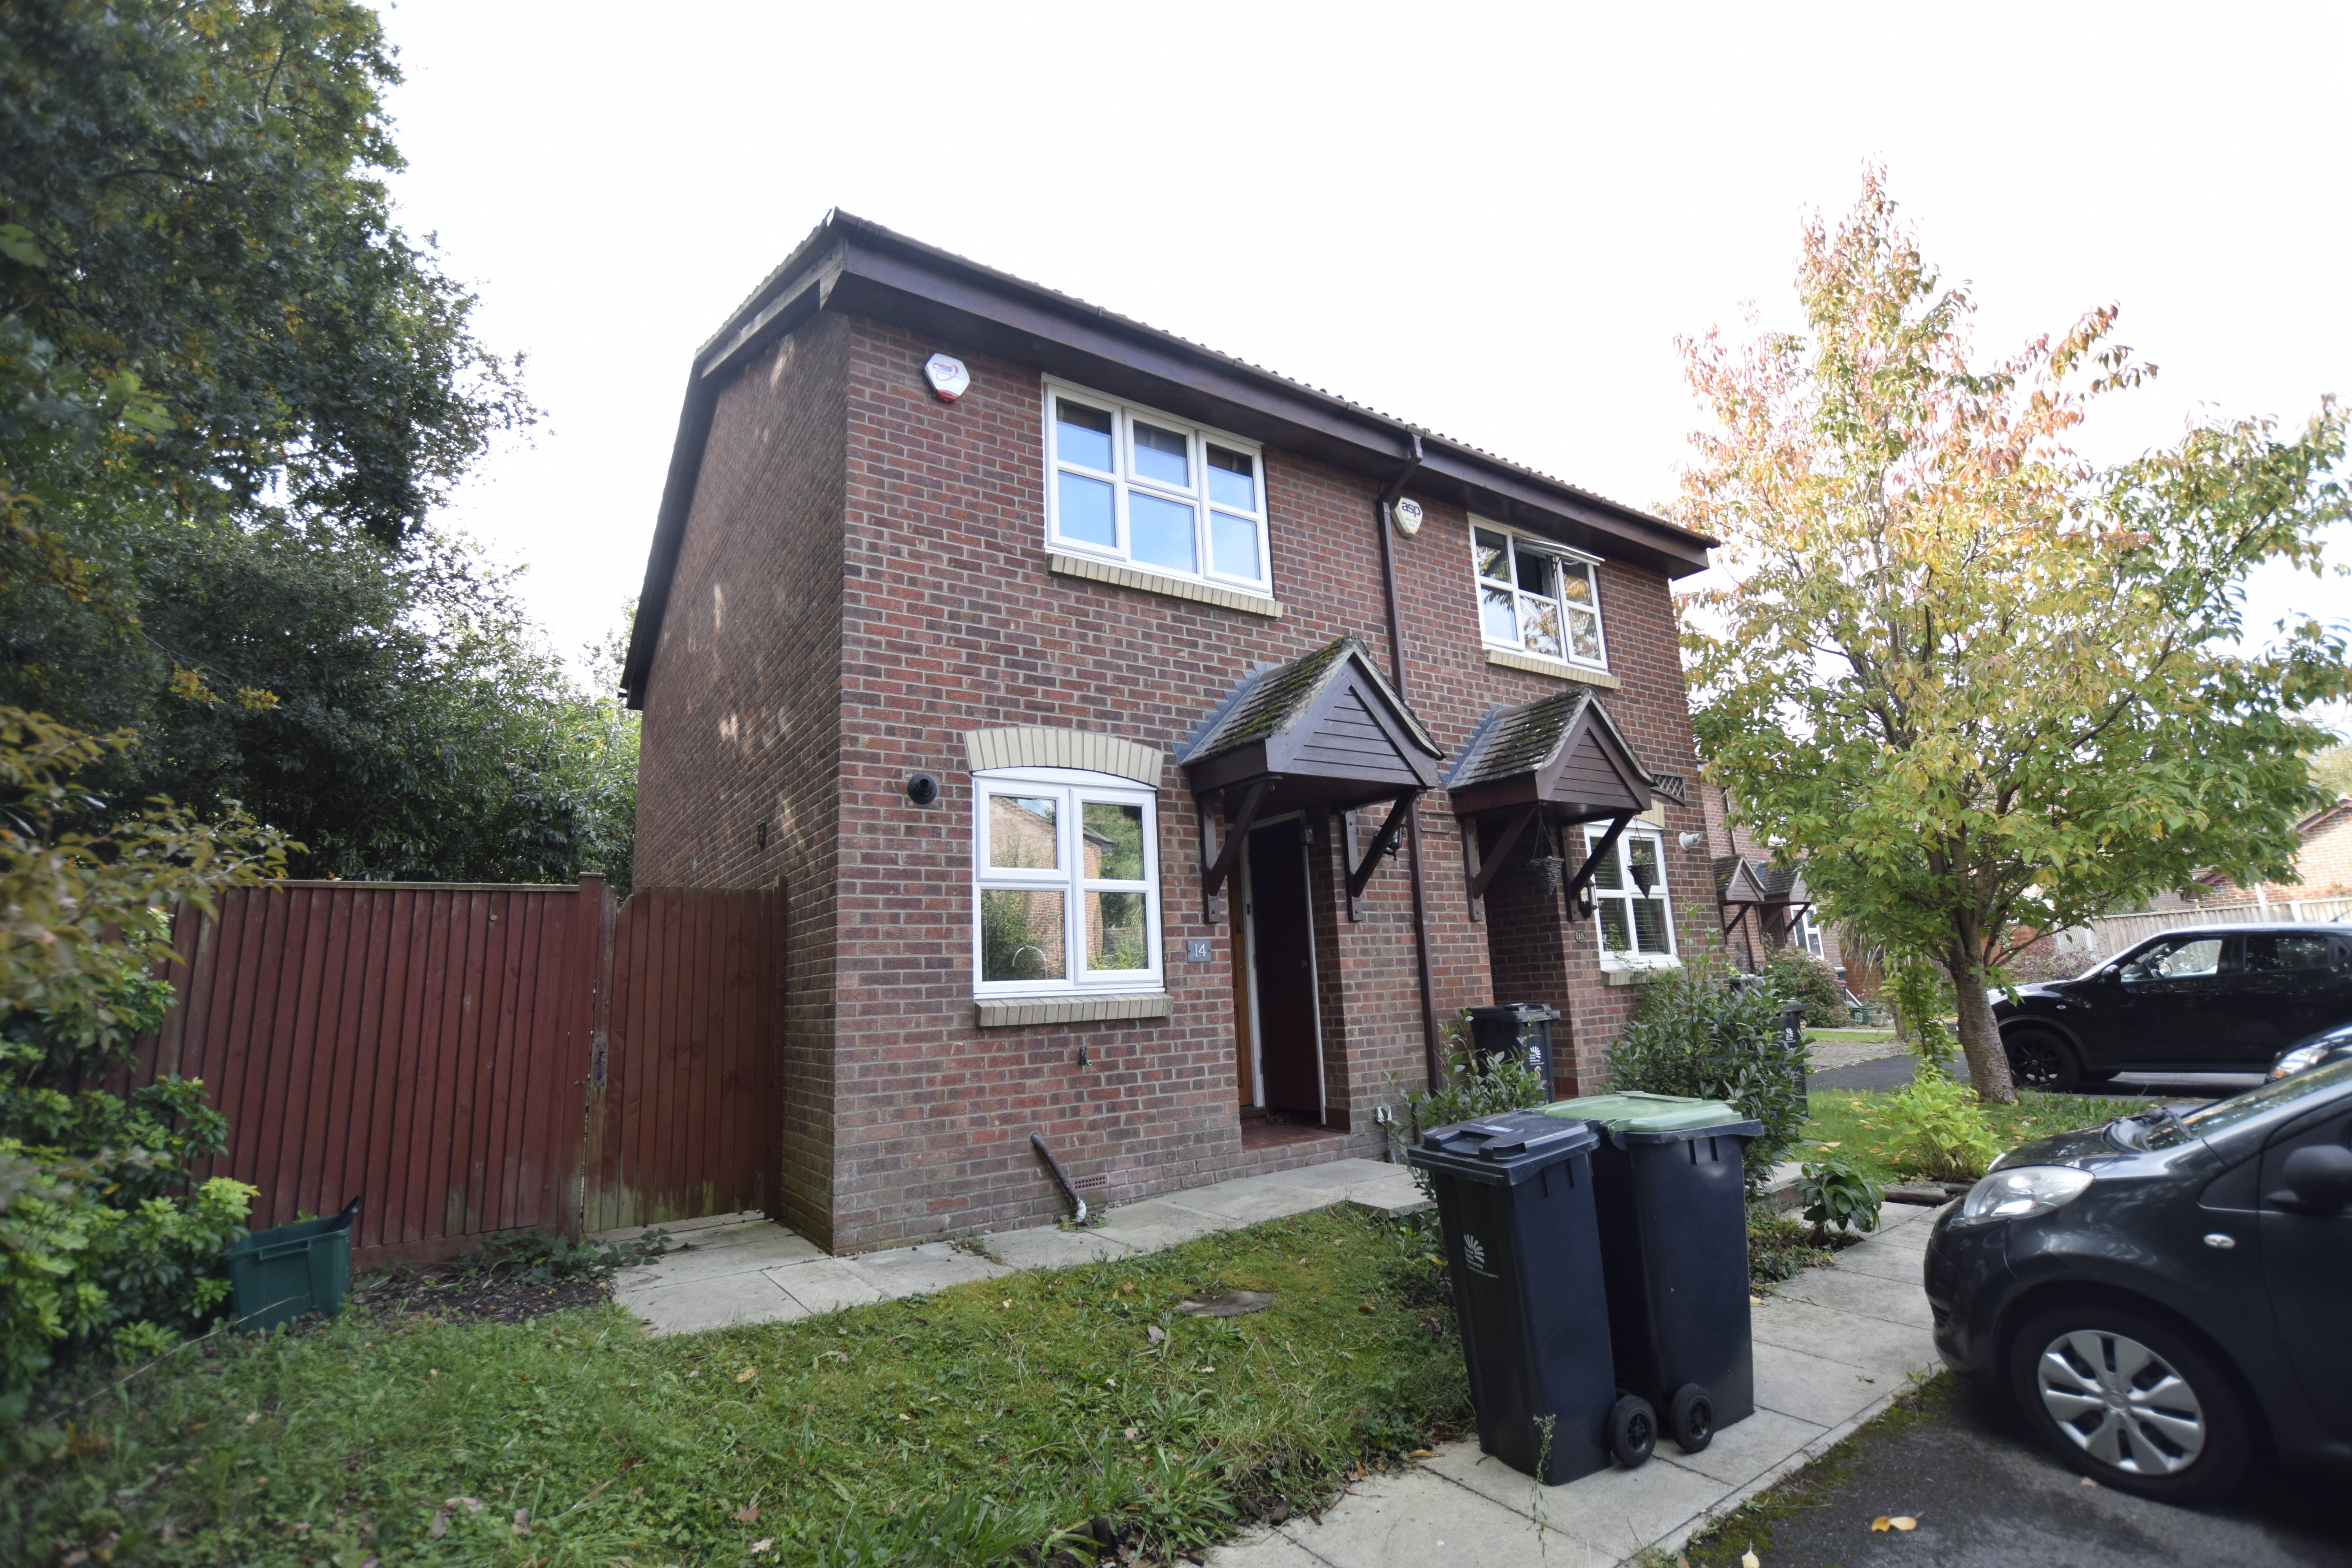 2 bed house to rent in Amberwood, Ferndown, BH22